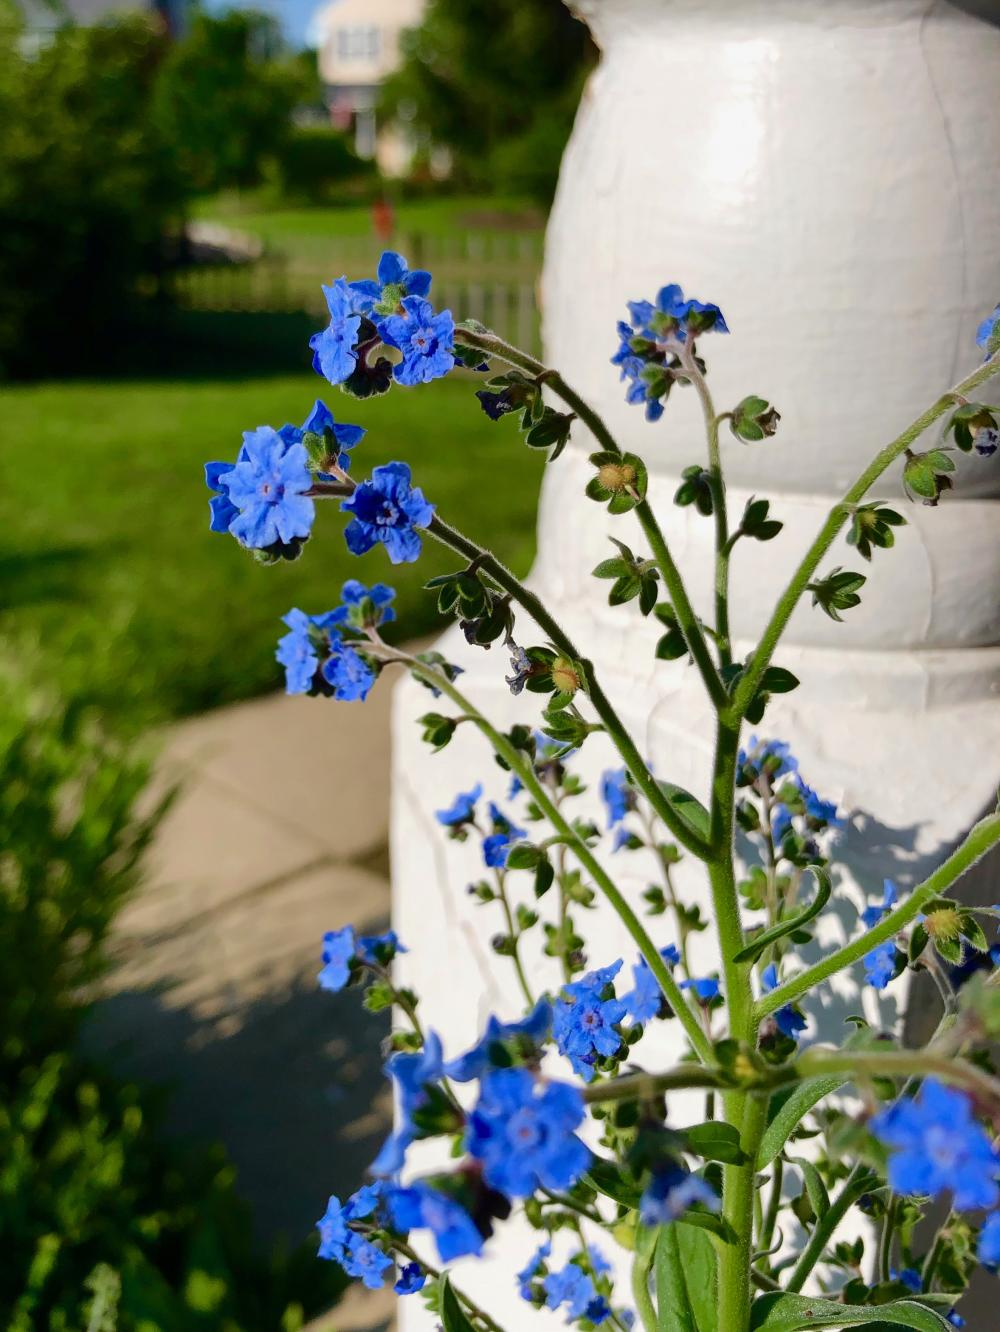 Forget Me Not flowers in full bloom